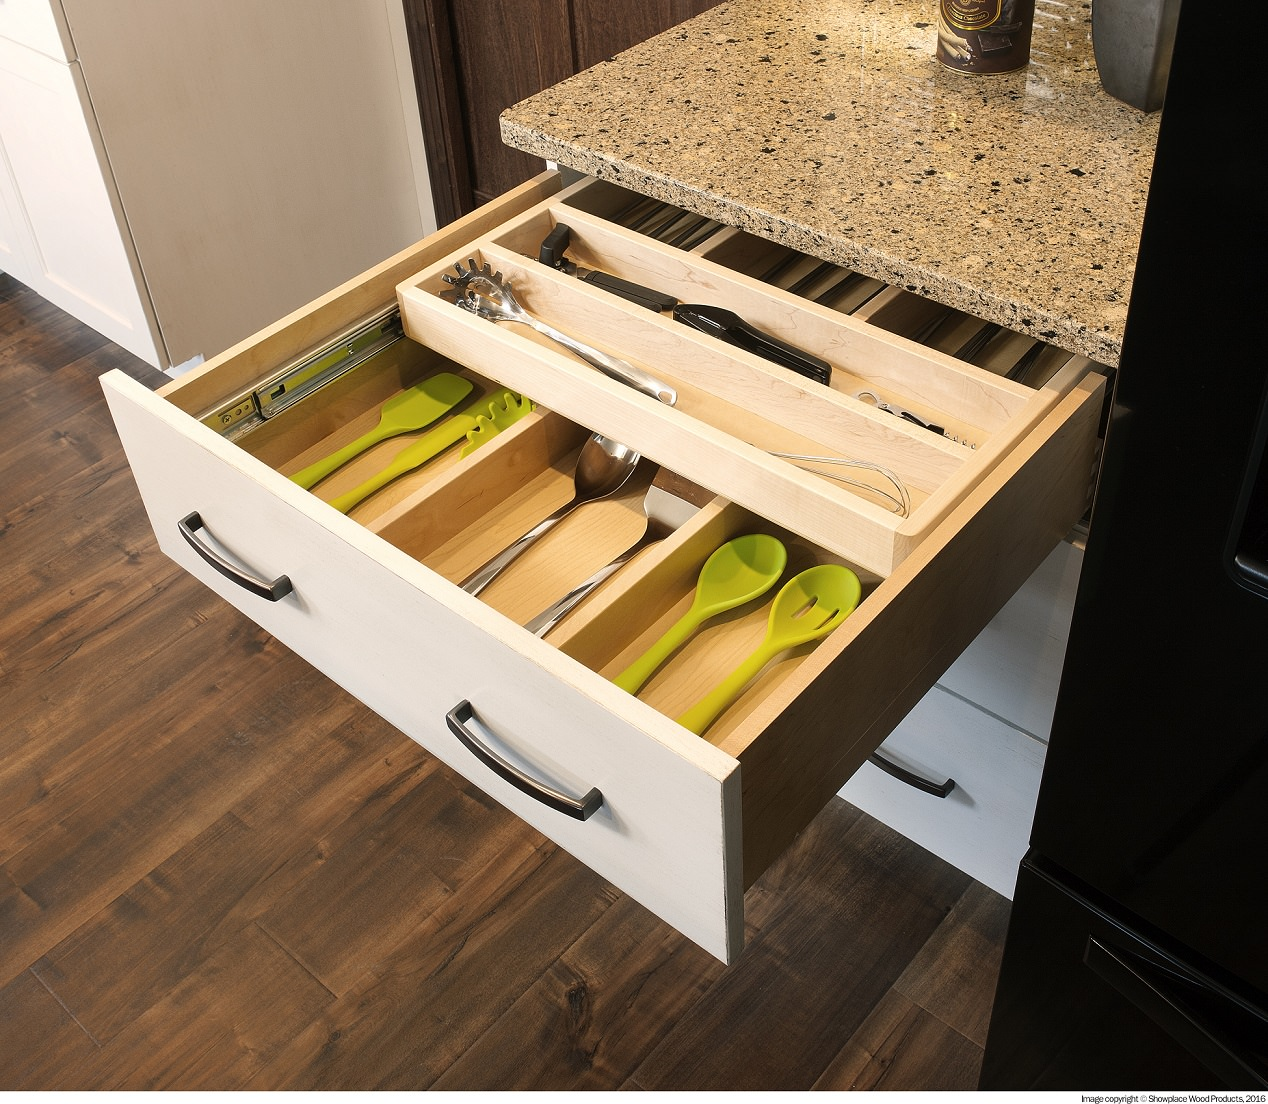 Our Cabinetry Shopping Tips (3)